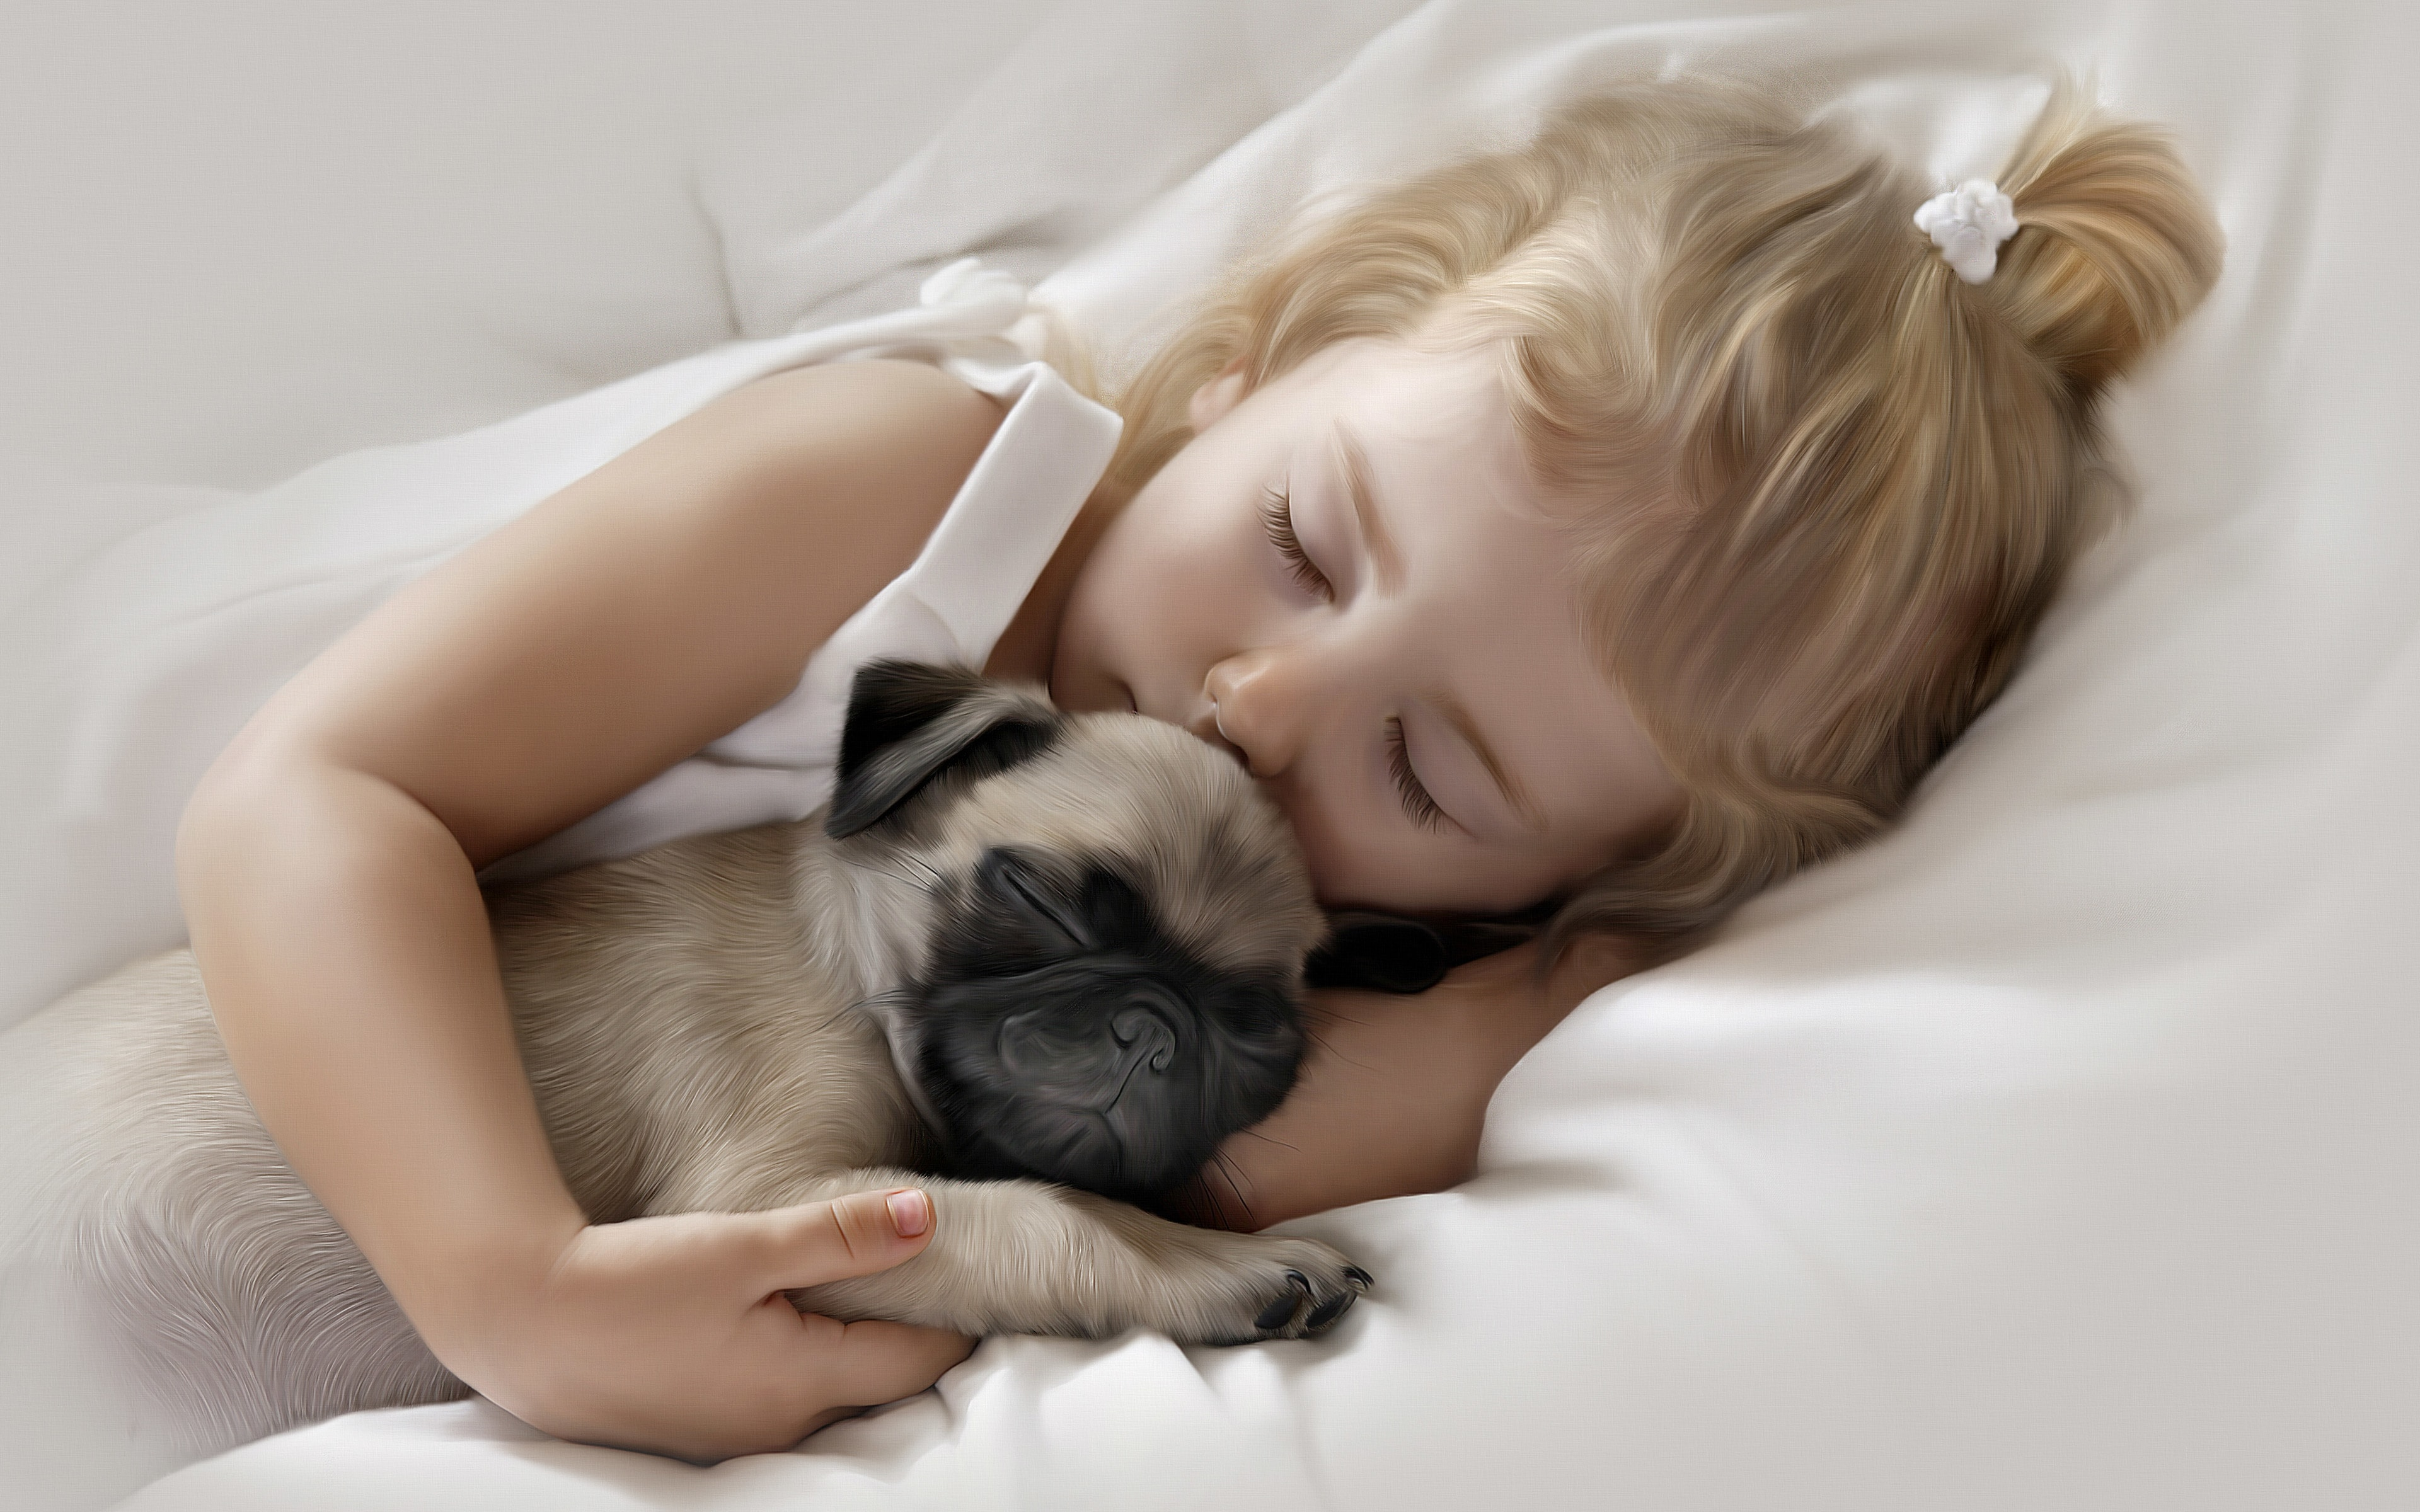 Adorable little girl sleeping pug puppy 1219 Wallpapers and 3840x2400